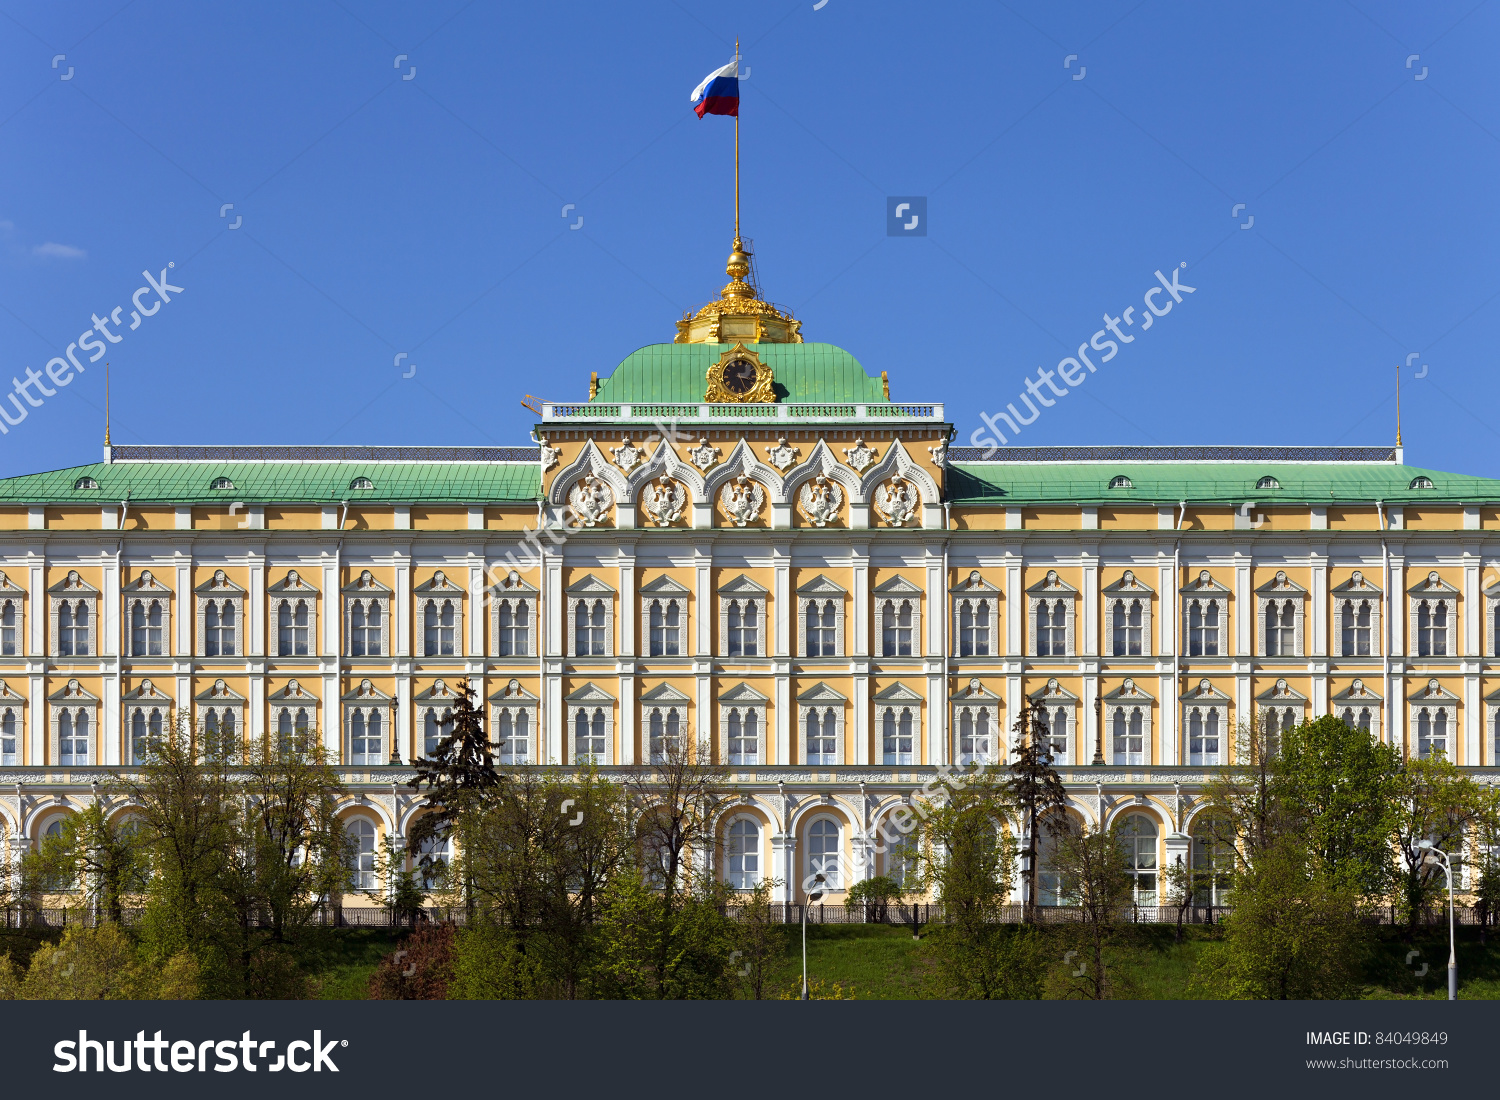 Grand kremlin palace clipart #4